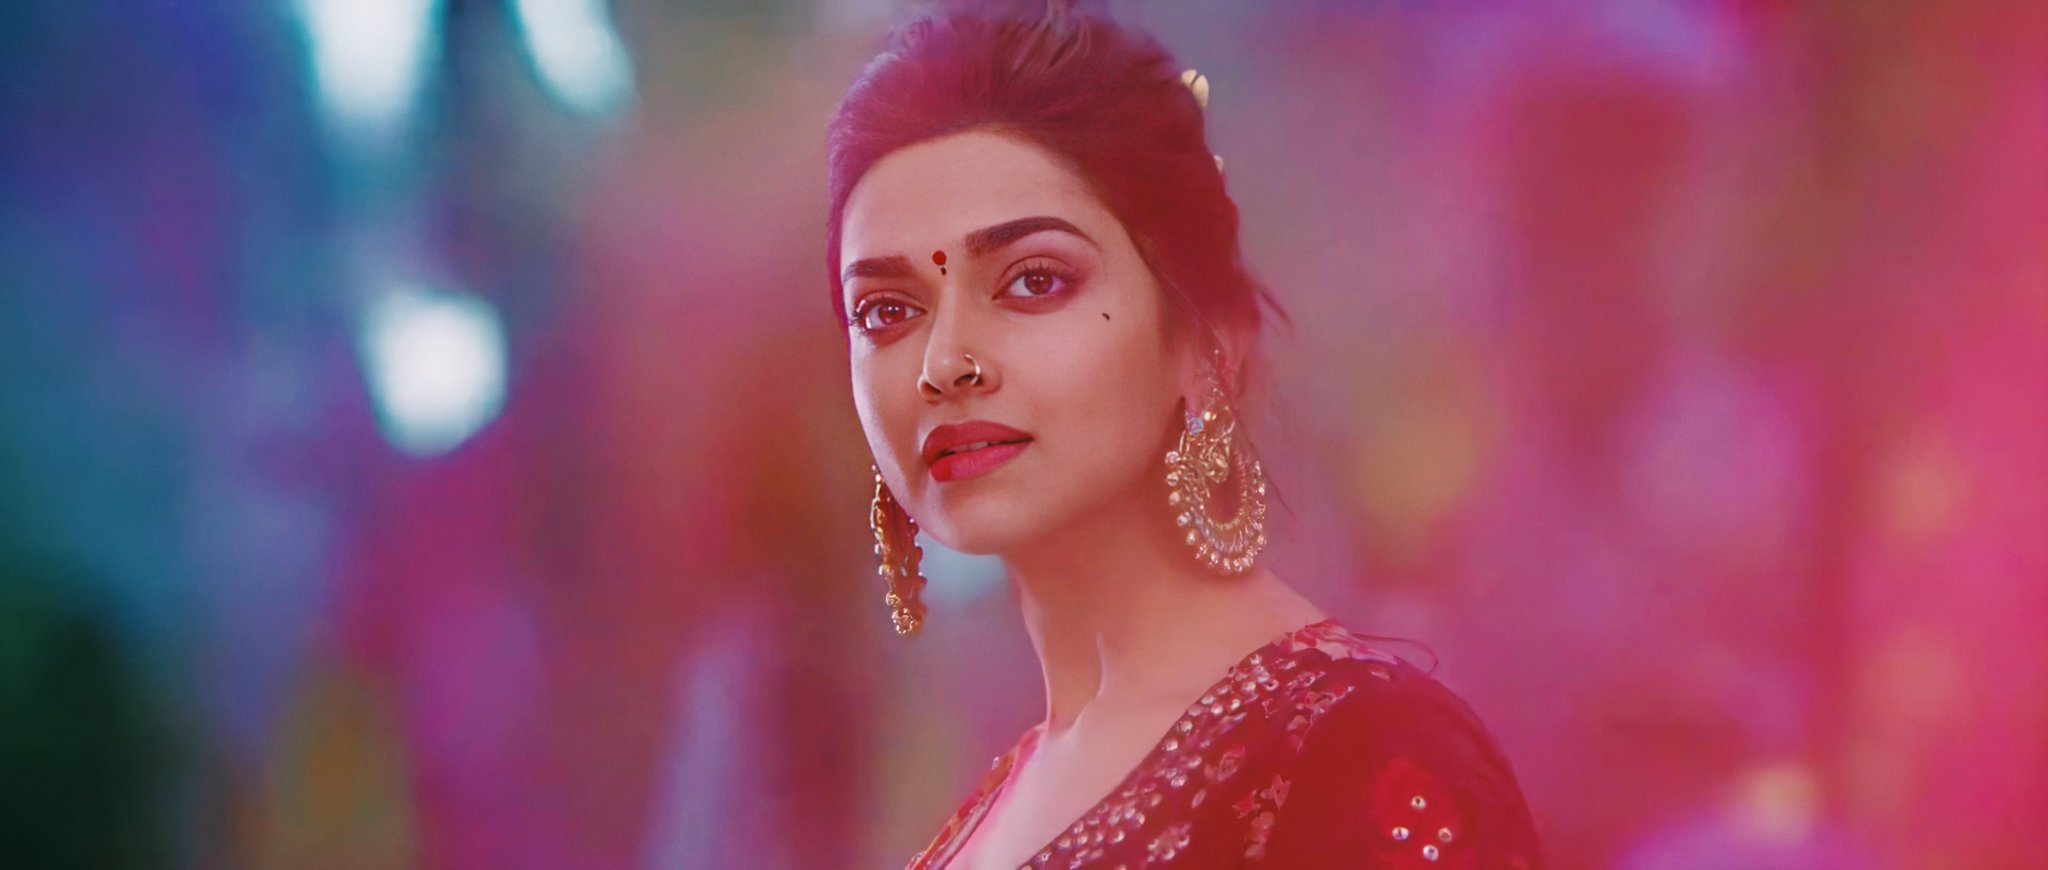 Deepika Padukone  IMAGES, GIF, ANIMATED GIF, WALLPAPER, STICKER FOR WHATSAPP & FACEBOOK